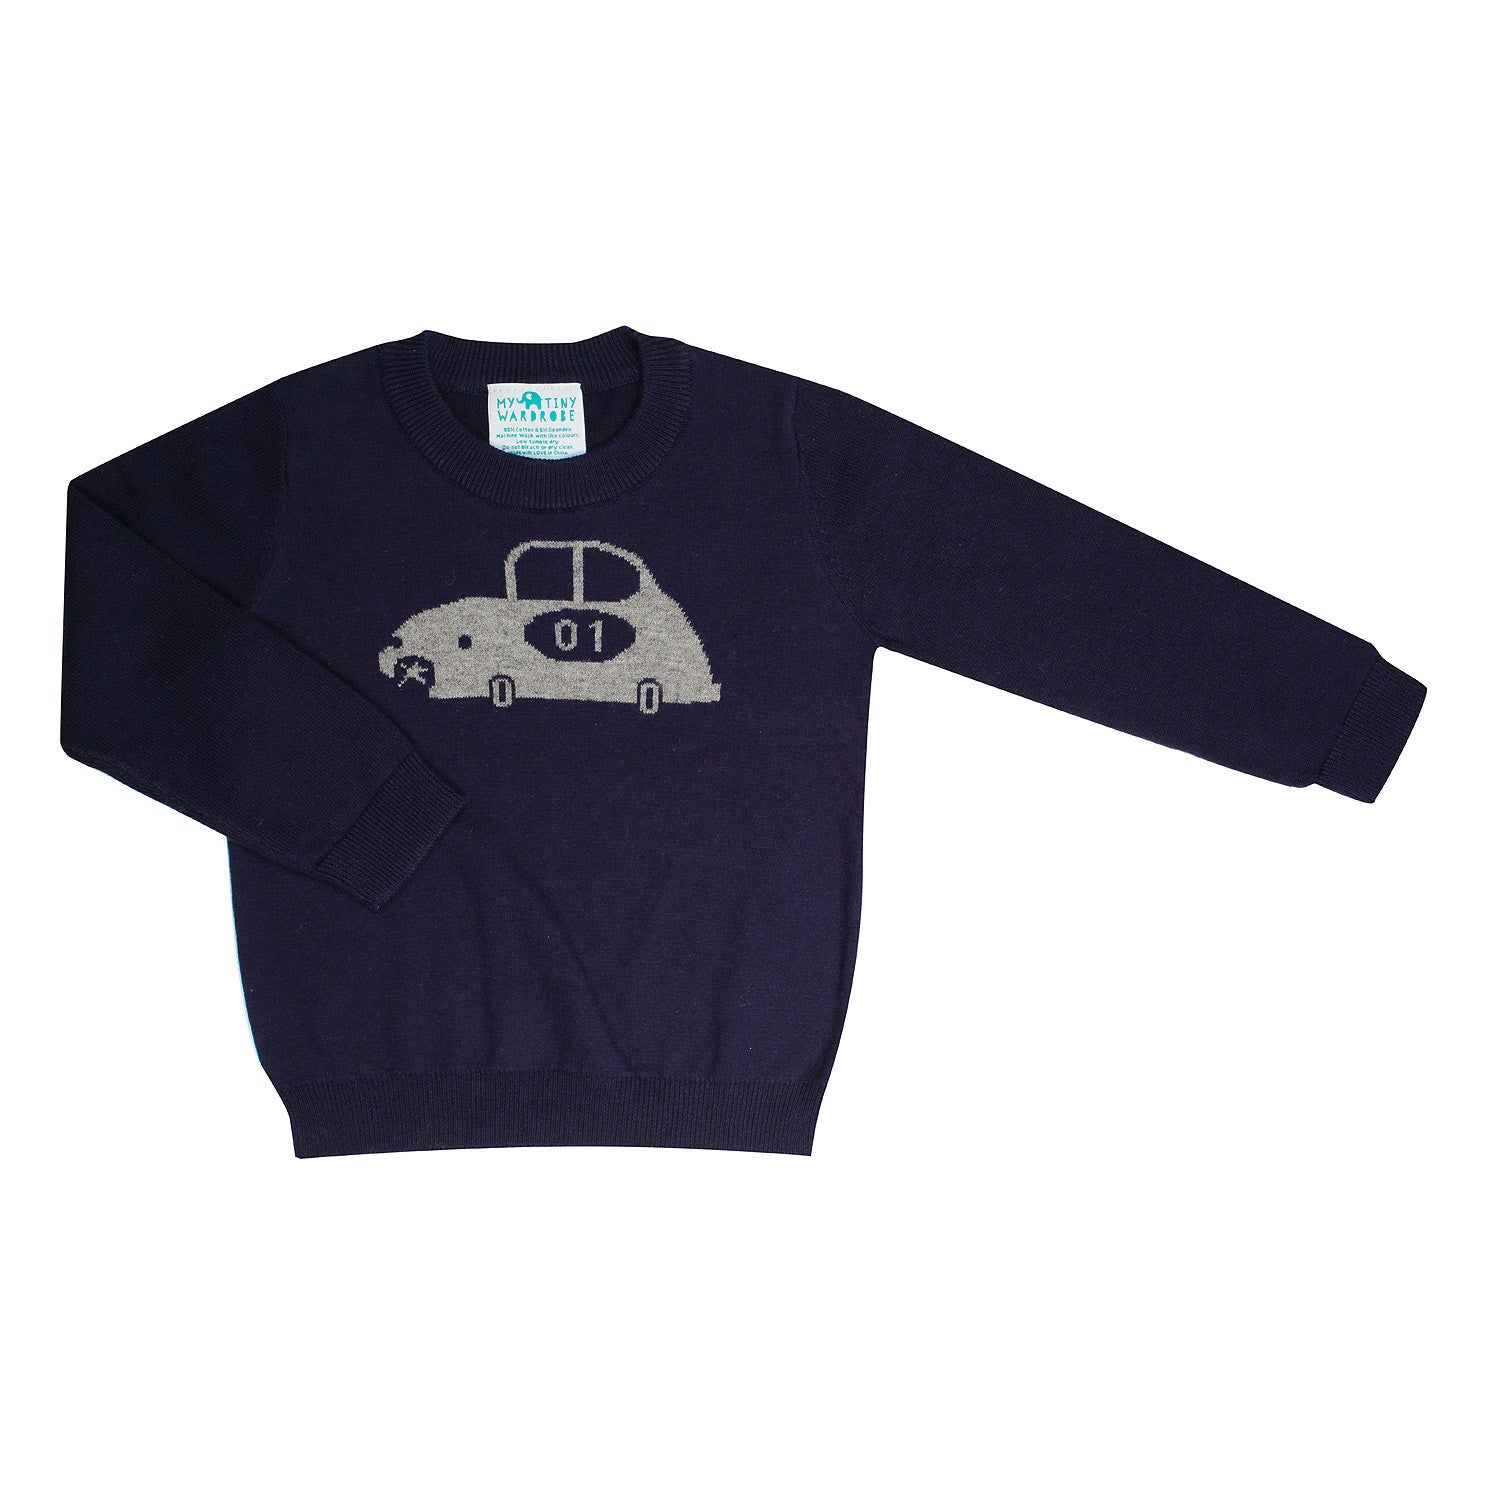 Toddler Boys Navy Blue Jumper, with Car Print - Limited Edition